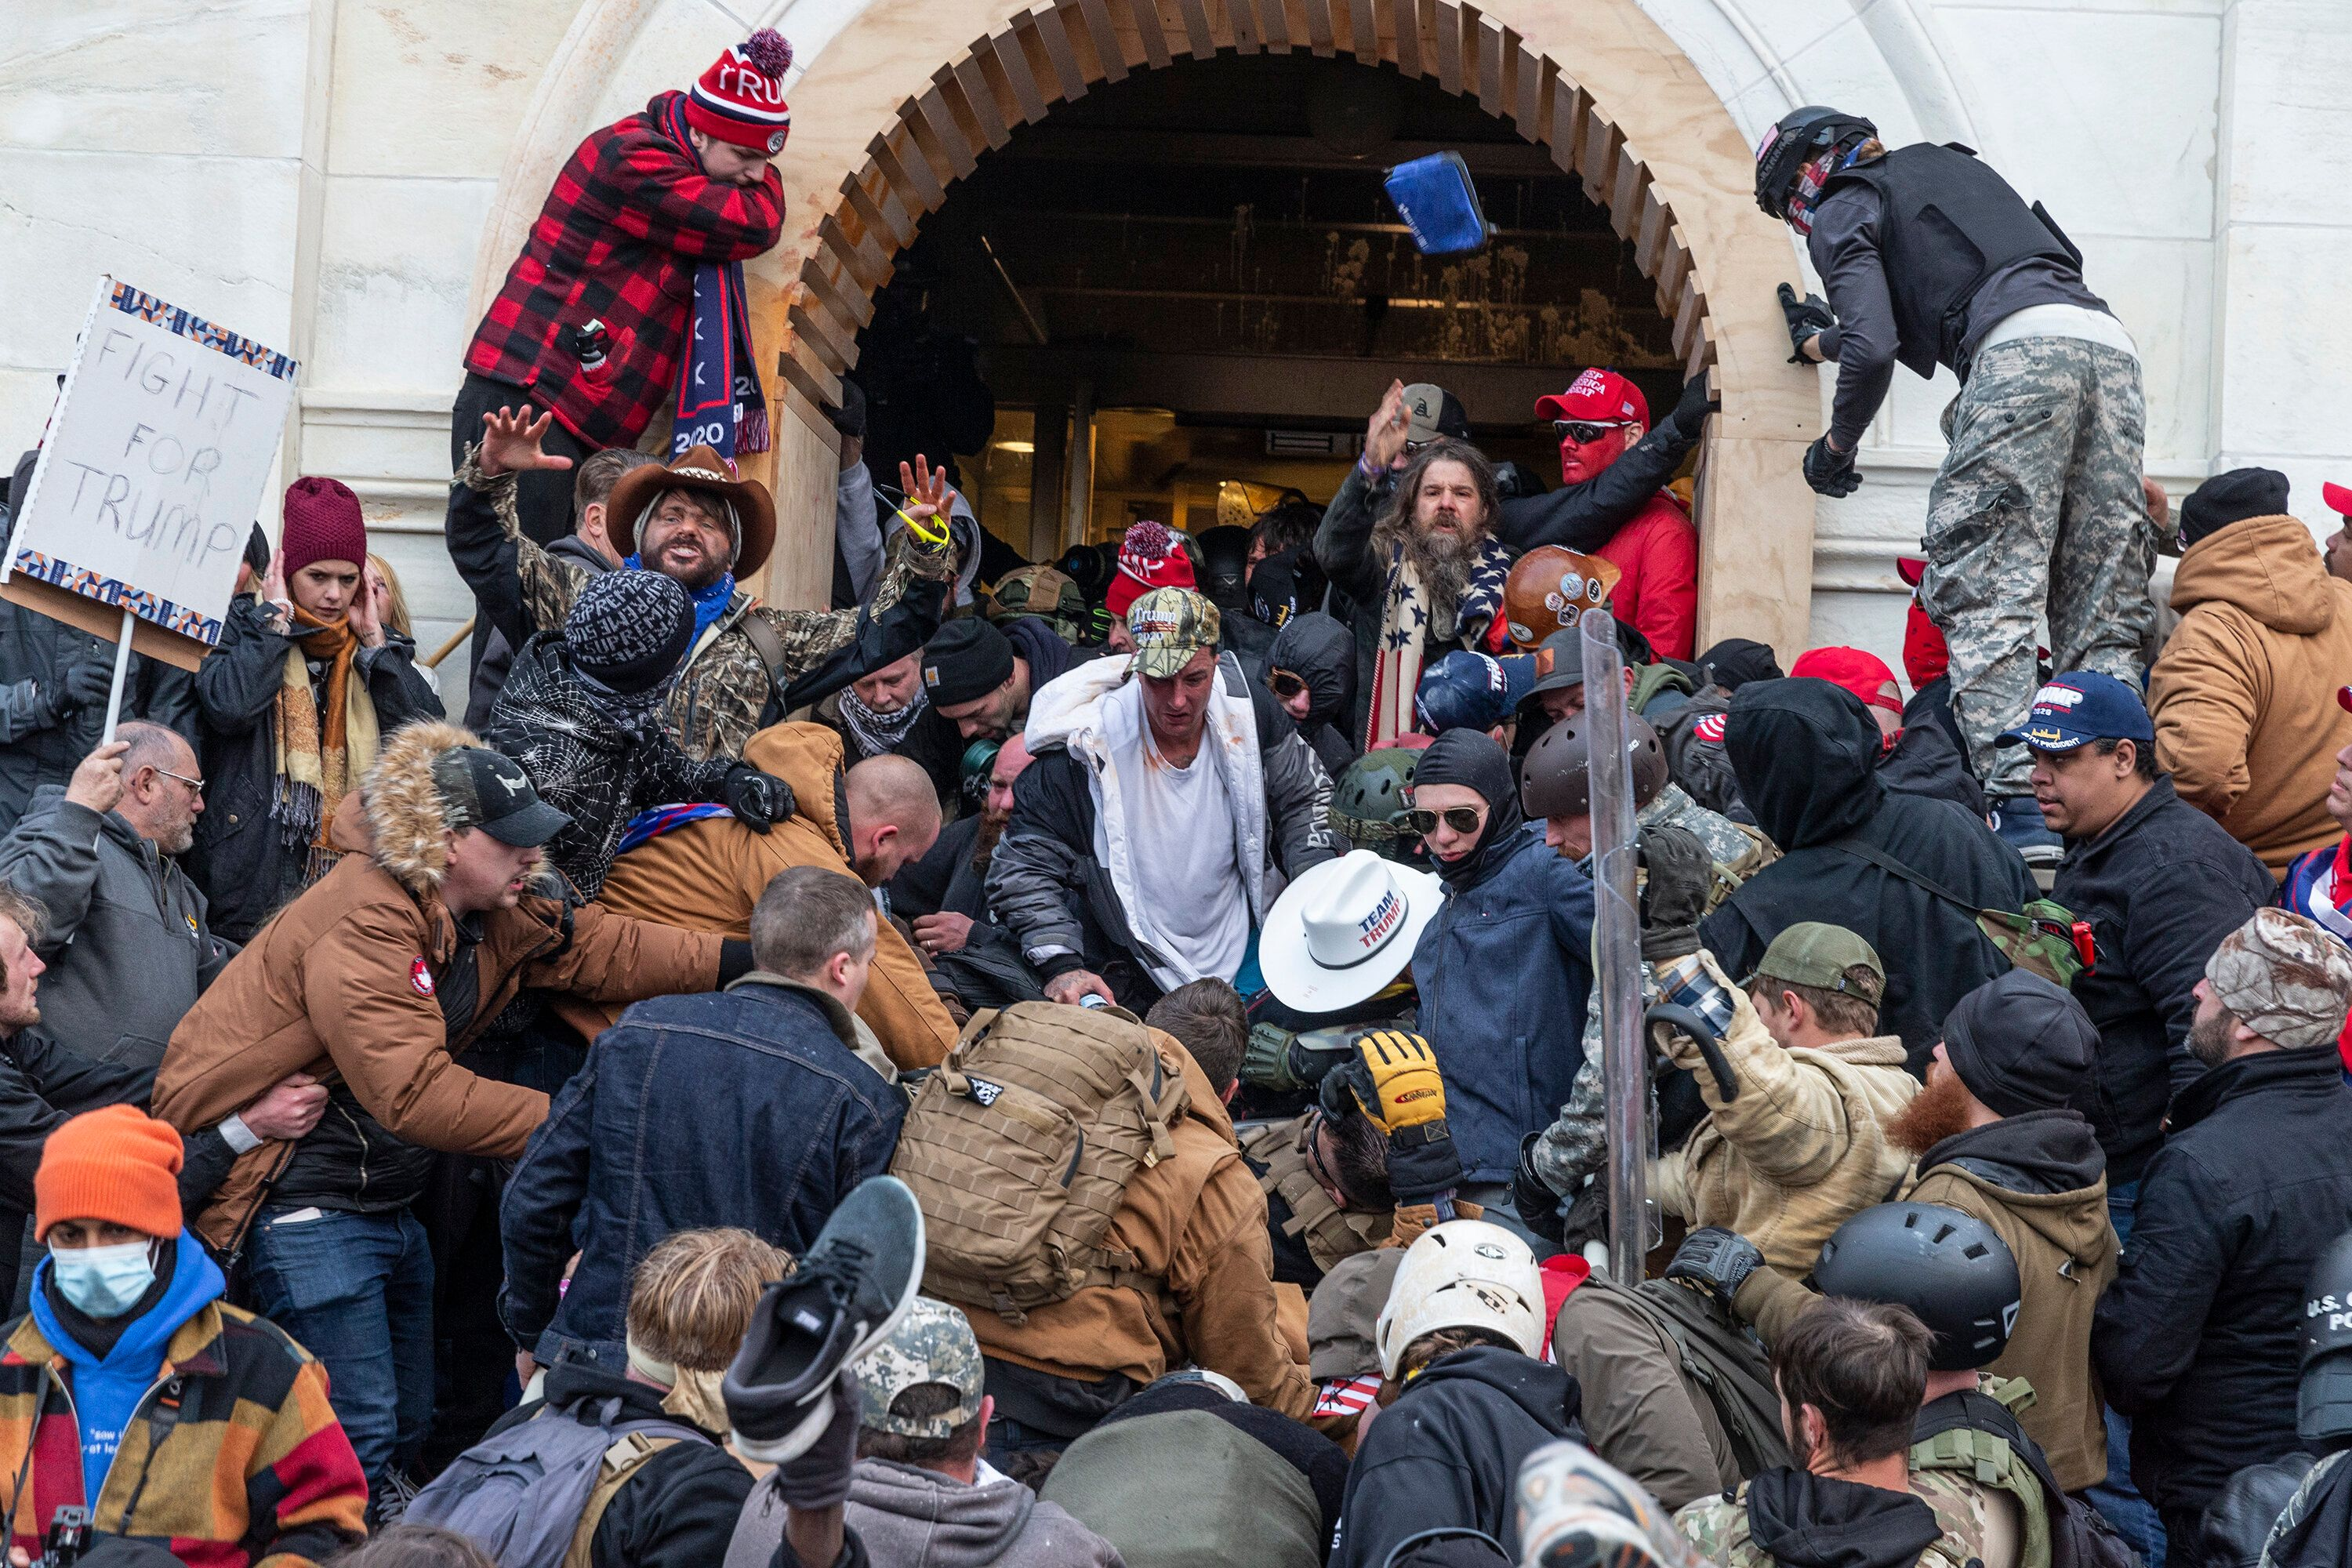 Rioters clash with police as they try to enter the Capitol on Jan. 6.